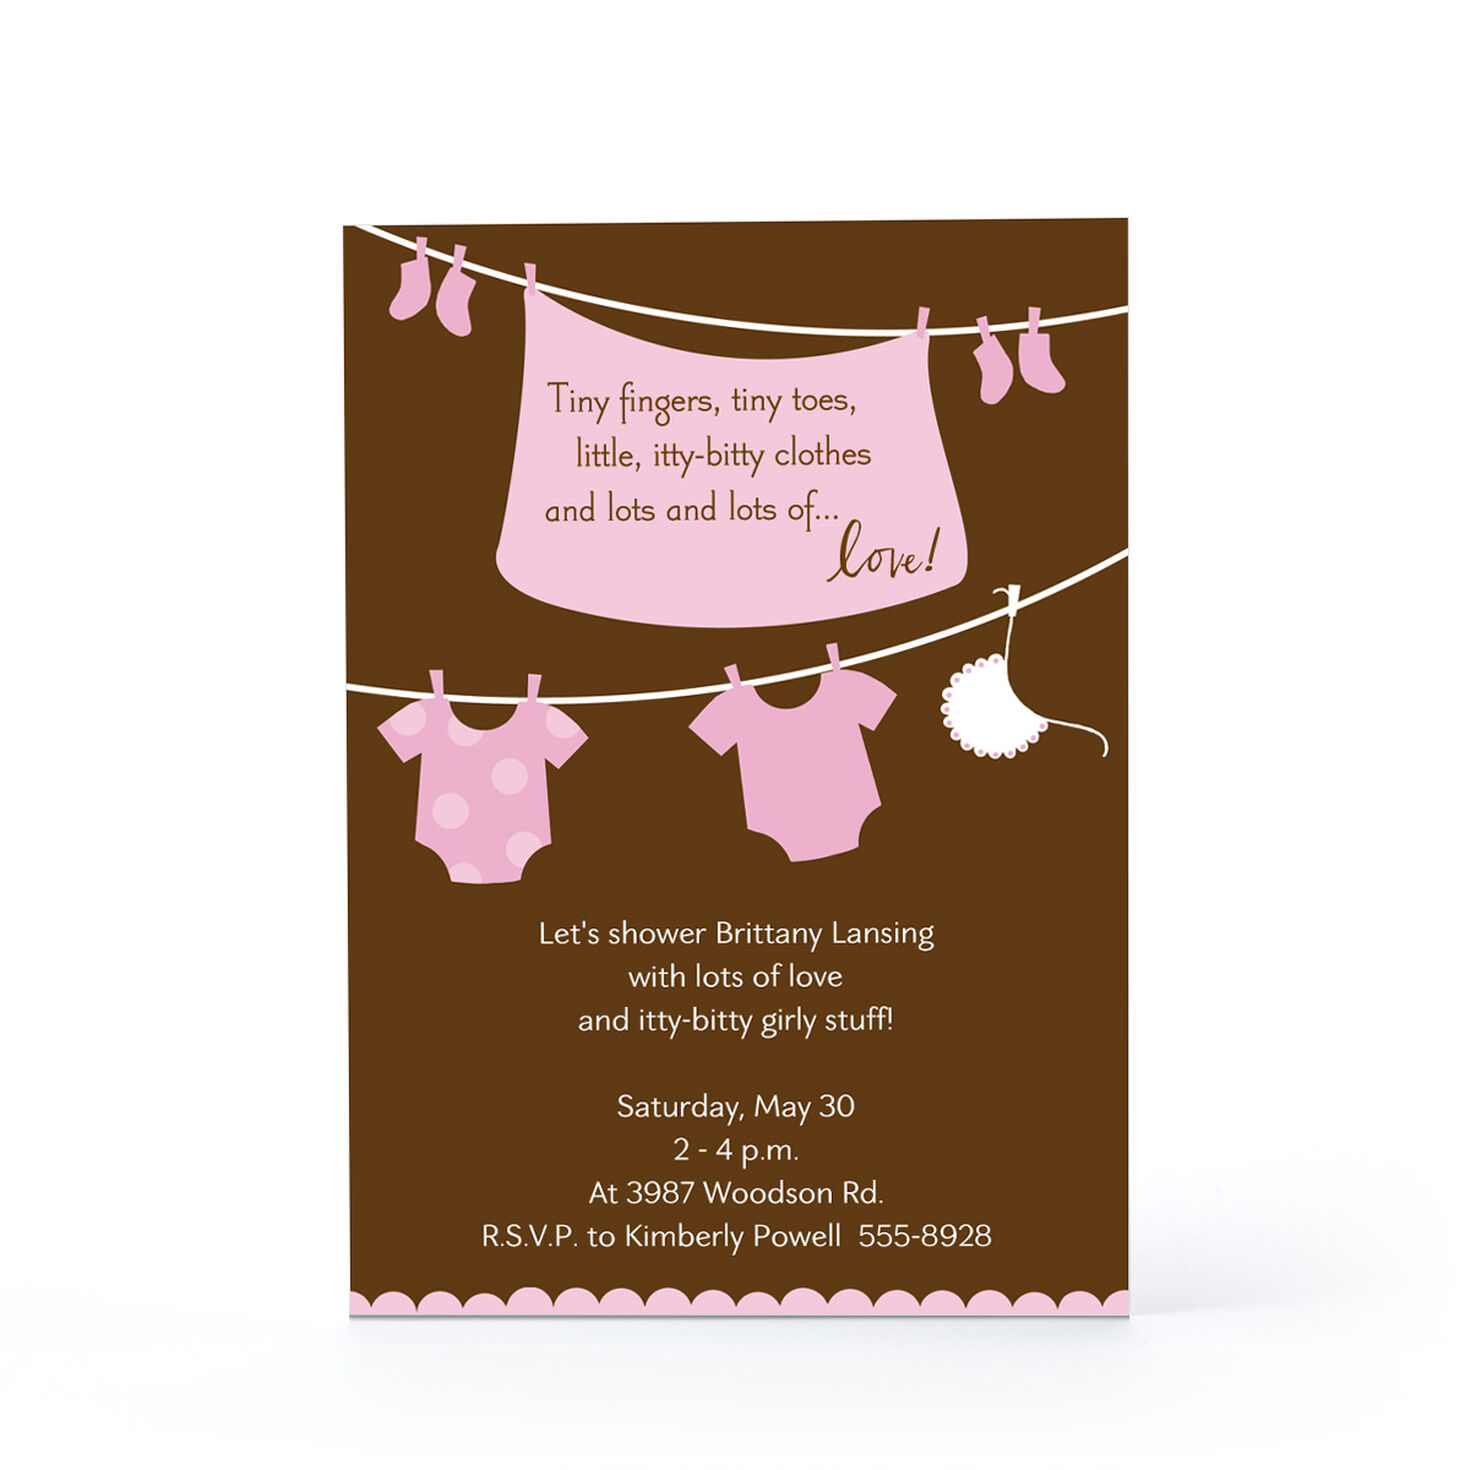 itty bitty girl stuff baby invitations and announcements hallmark